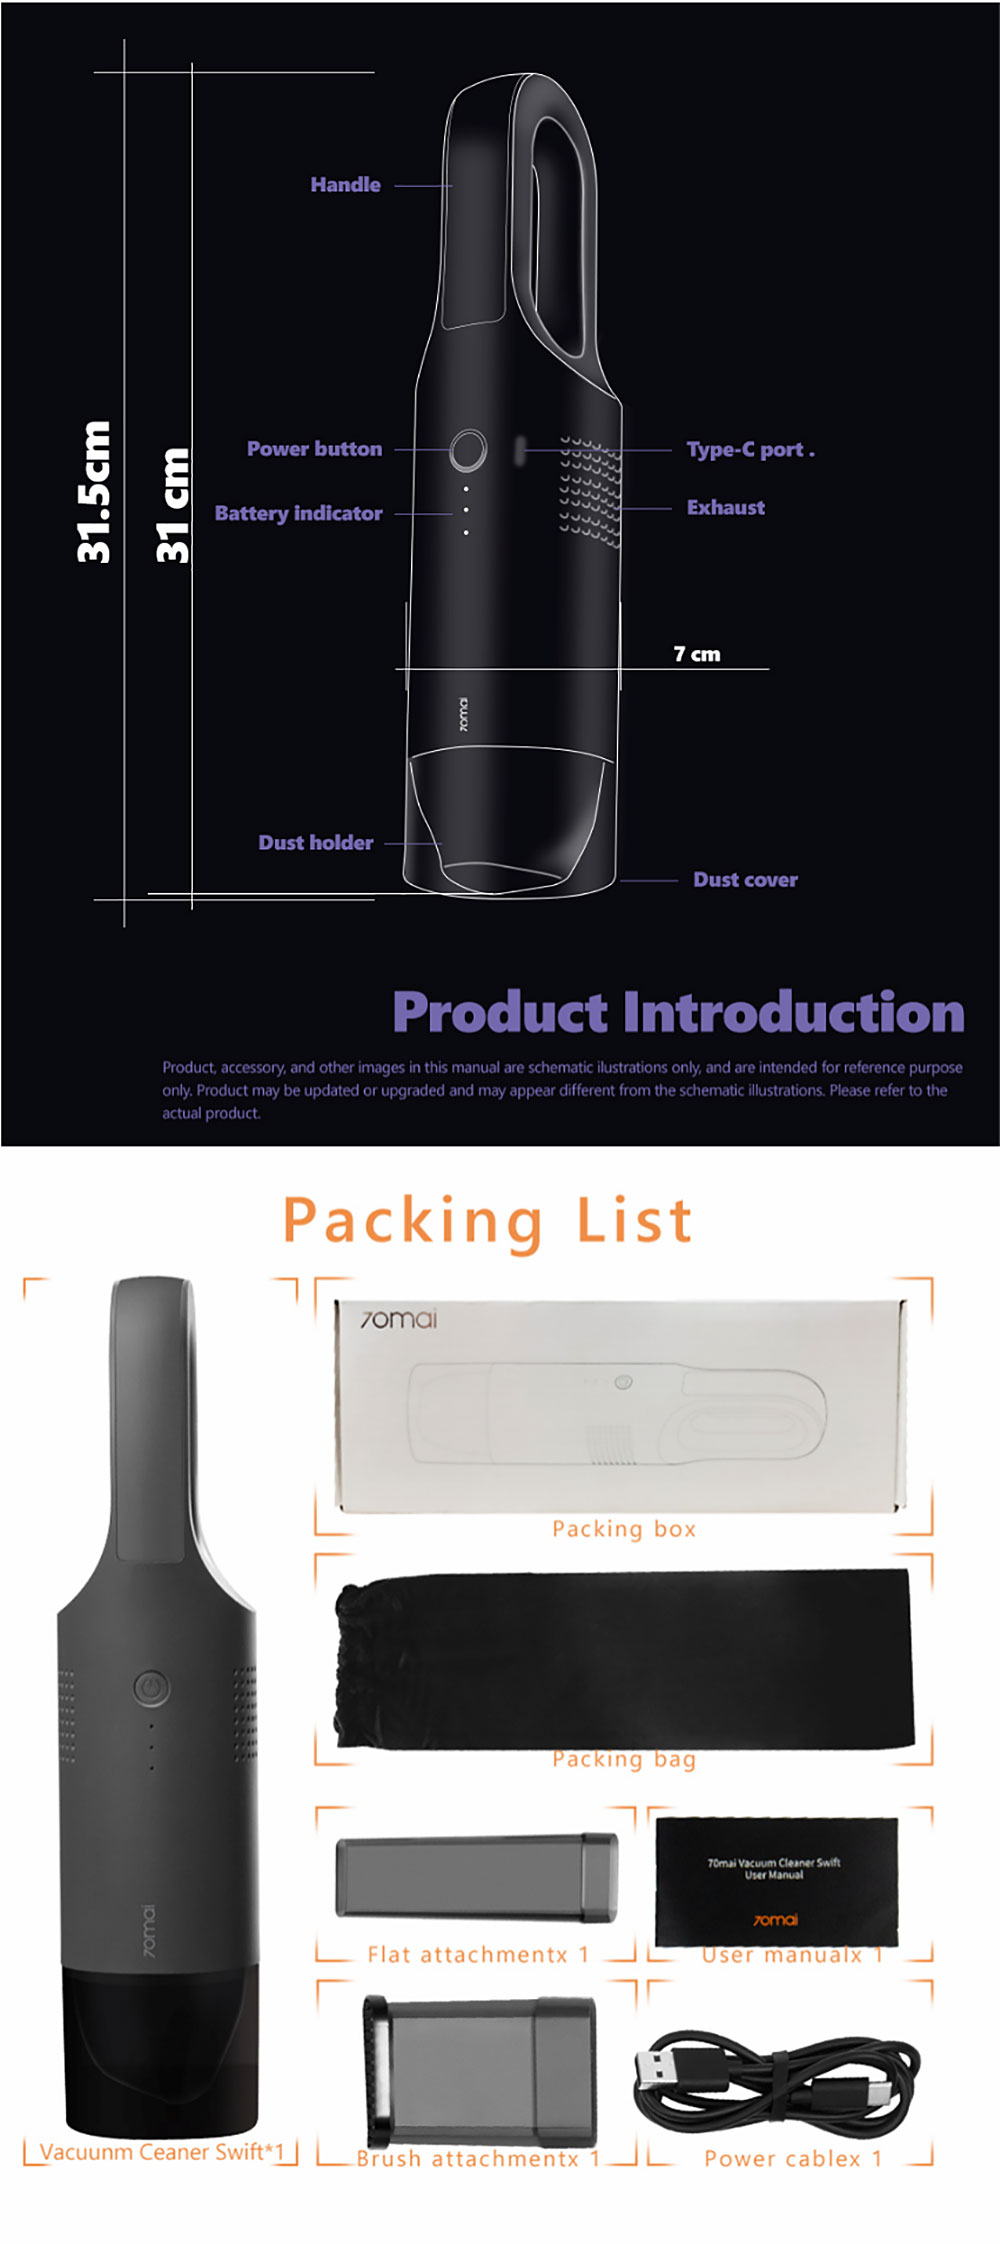 [ International Version ] 70mai Mini Car Vacuum Cleaner Handheld 5000pa Wireless Light Weight Auto Cyclonic Filter Separator from Xiaomi Ecological Chain